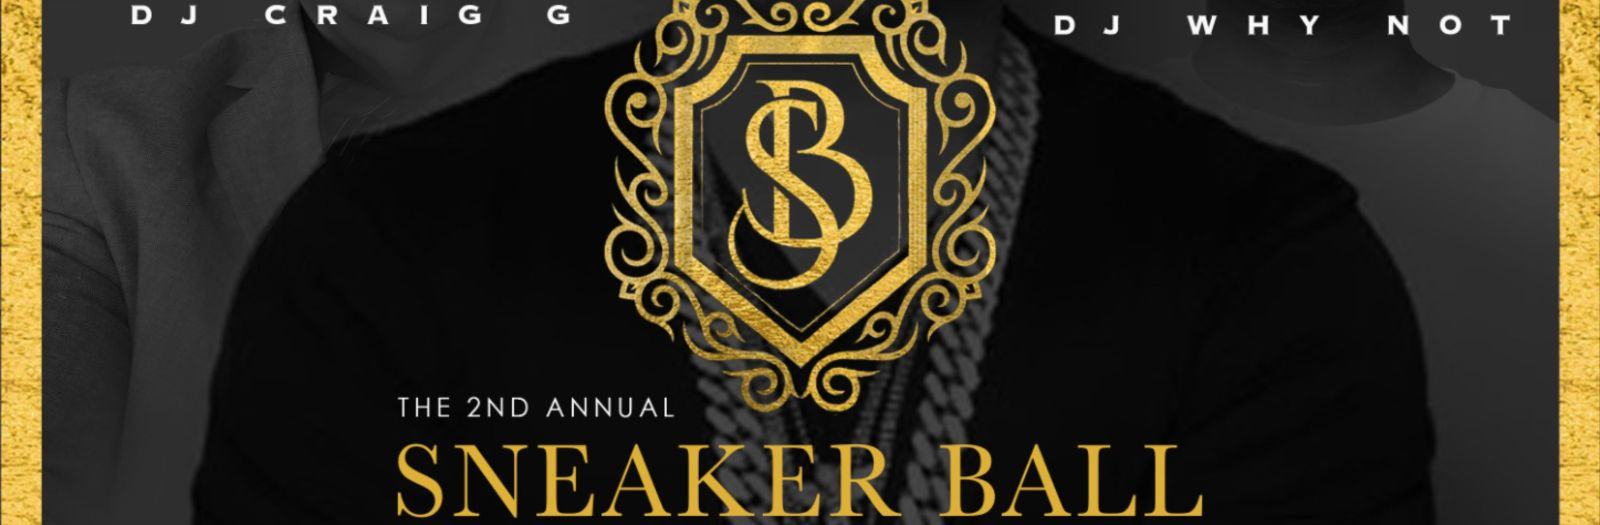 The 2nd Annual Sneaker Ball